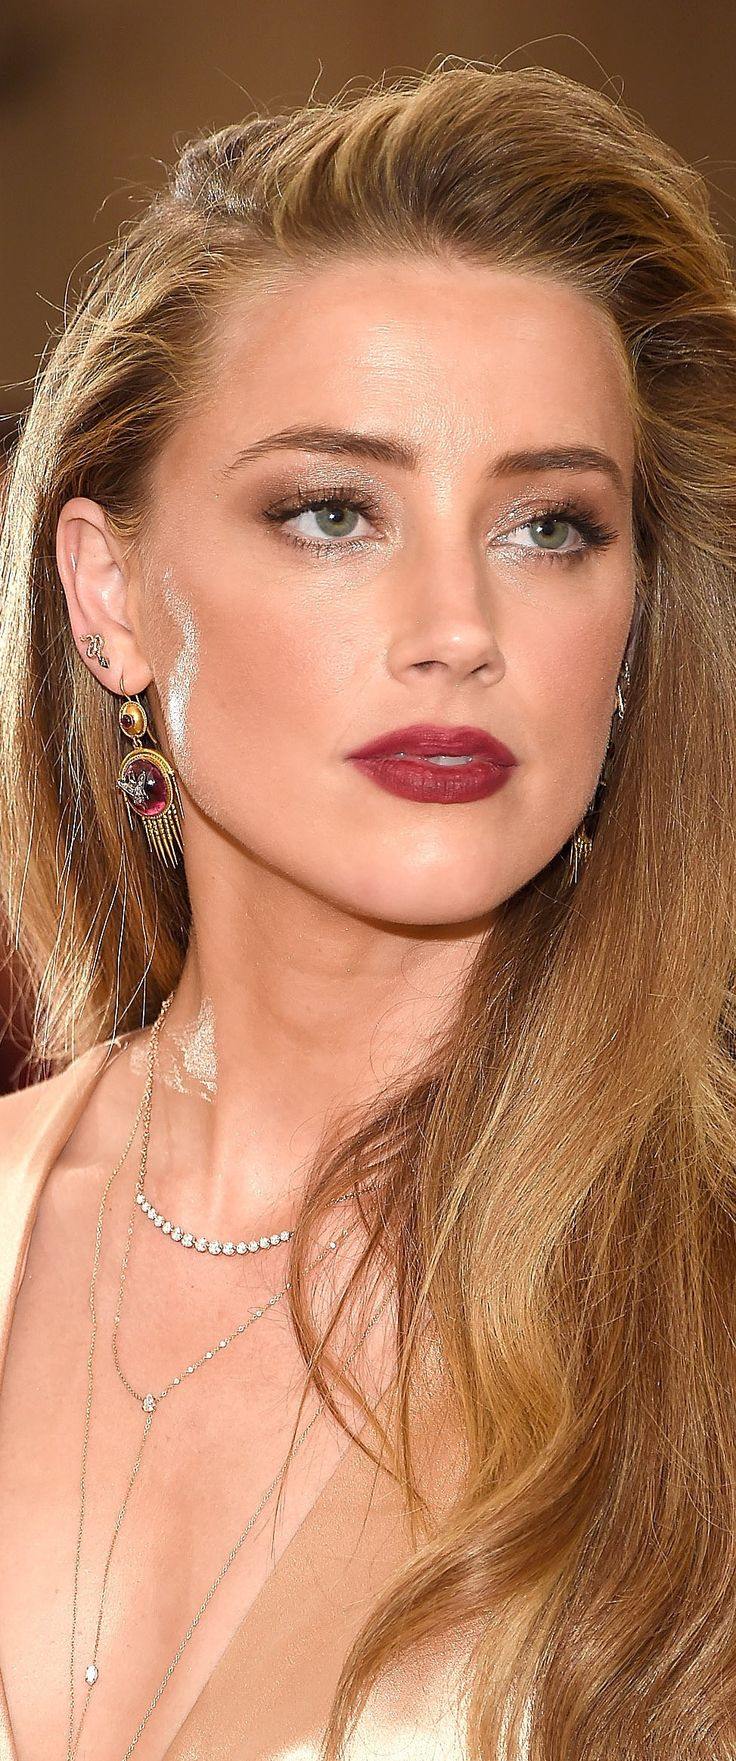 Shimmery eye makeup and berry color lips                                                                                                                                                                                 More